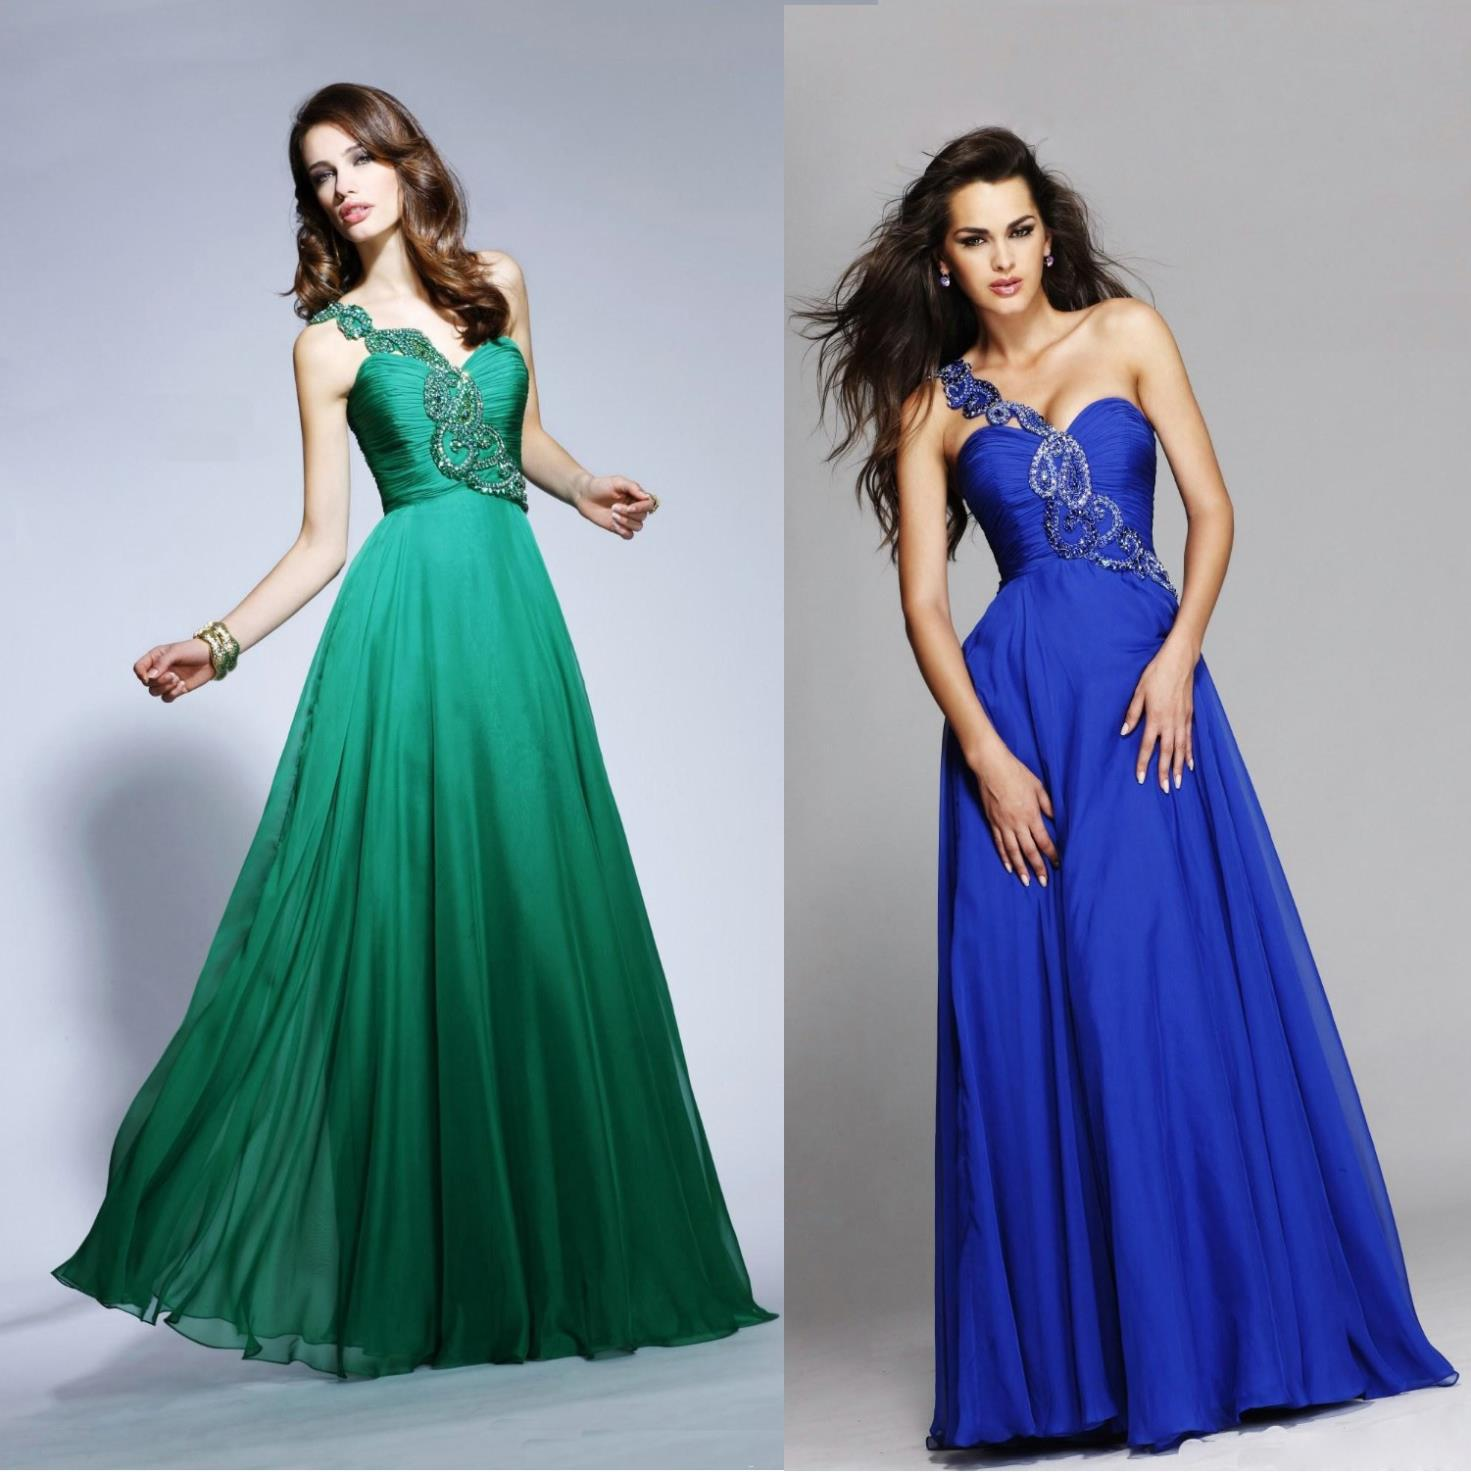 2014 Fantasy One Shoulder Sweetheart Neckline Emerald Green Prom ...